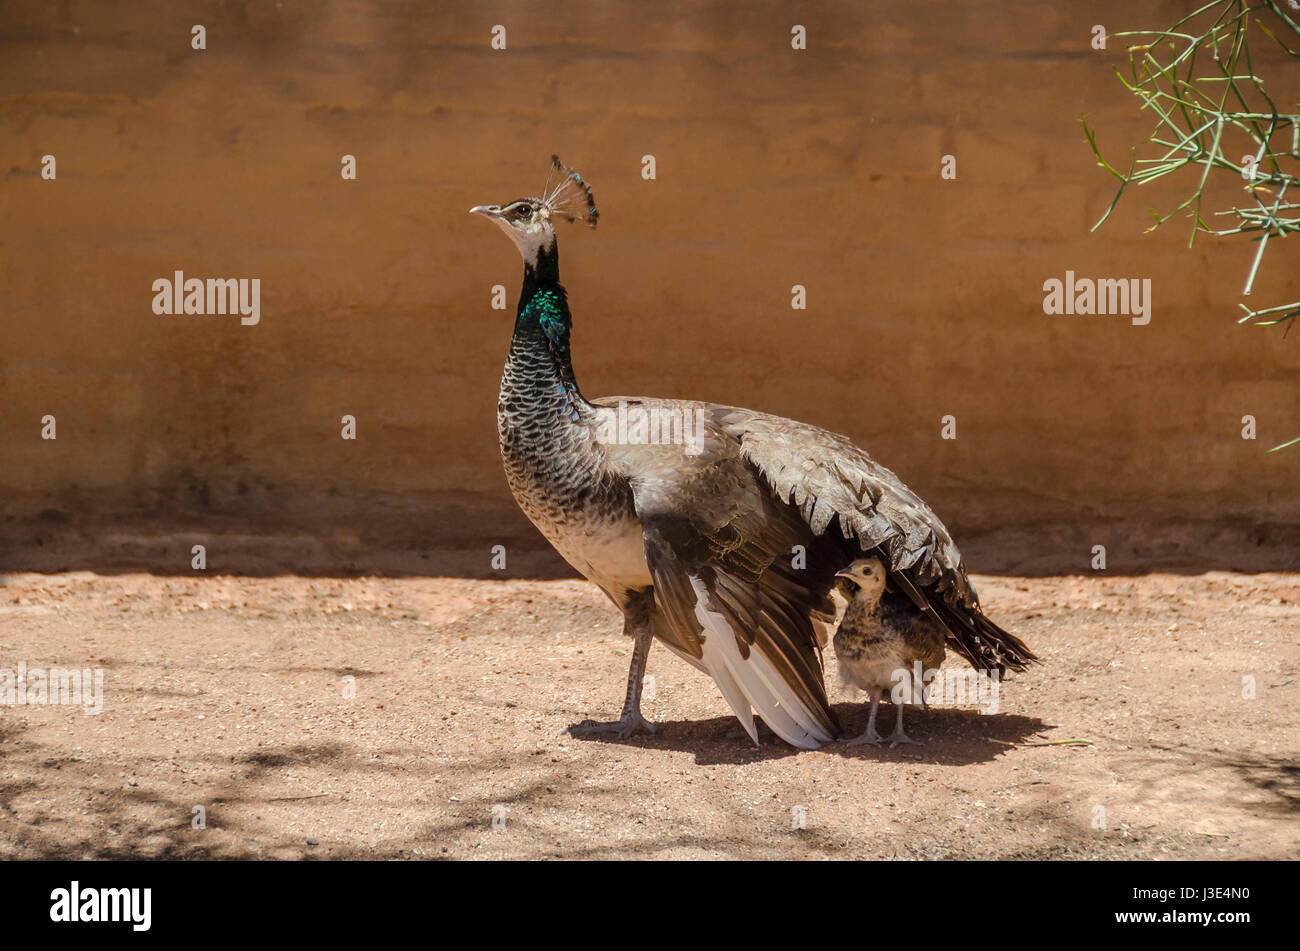 Peafowl mother protects its chick from the sun, providing shadow with its wing in Solitair, Namibia. - Stock Image